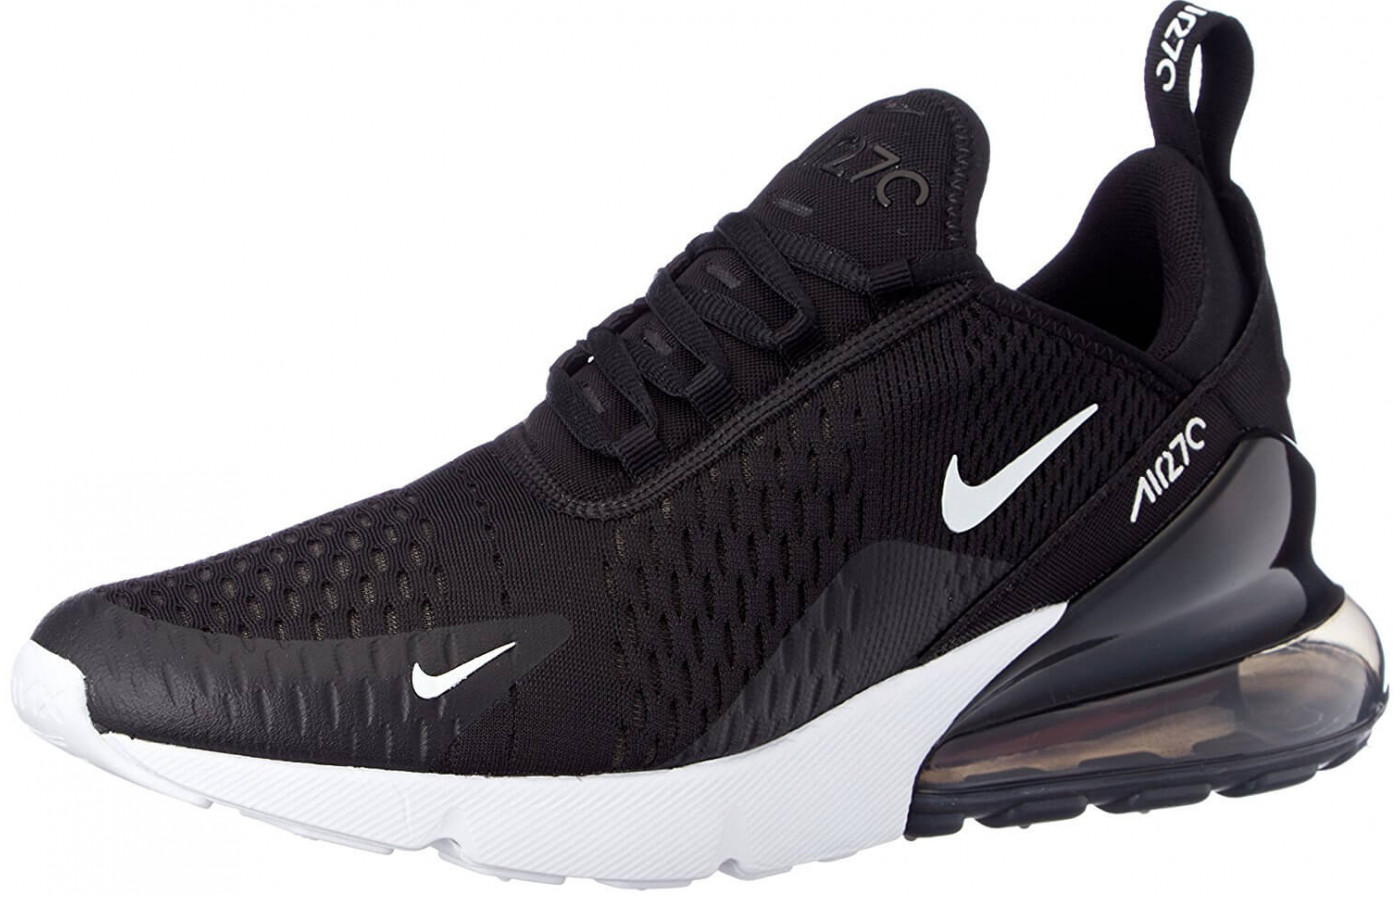 promo code a0192 7b8ef Nike Air Max 270. Mesh upper and 270 degrees of Air ...